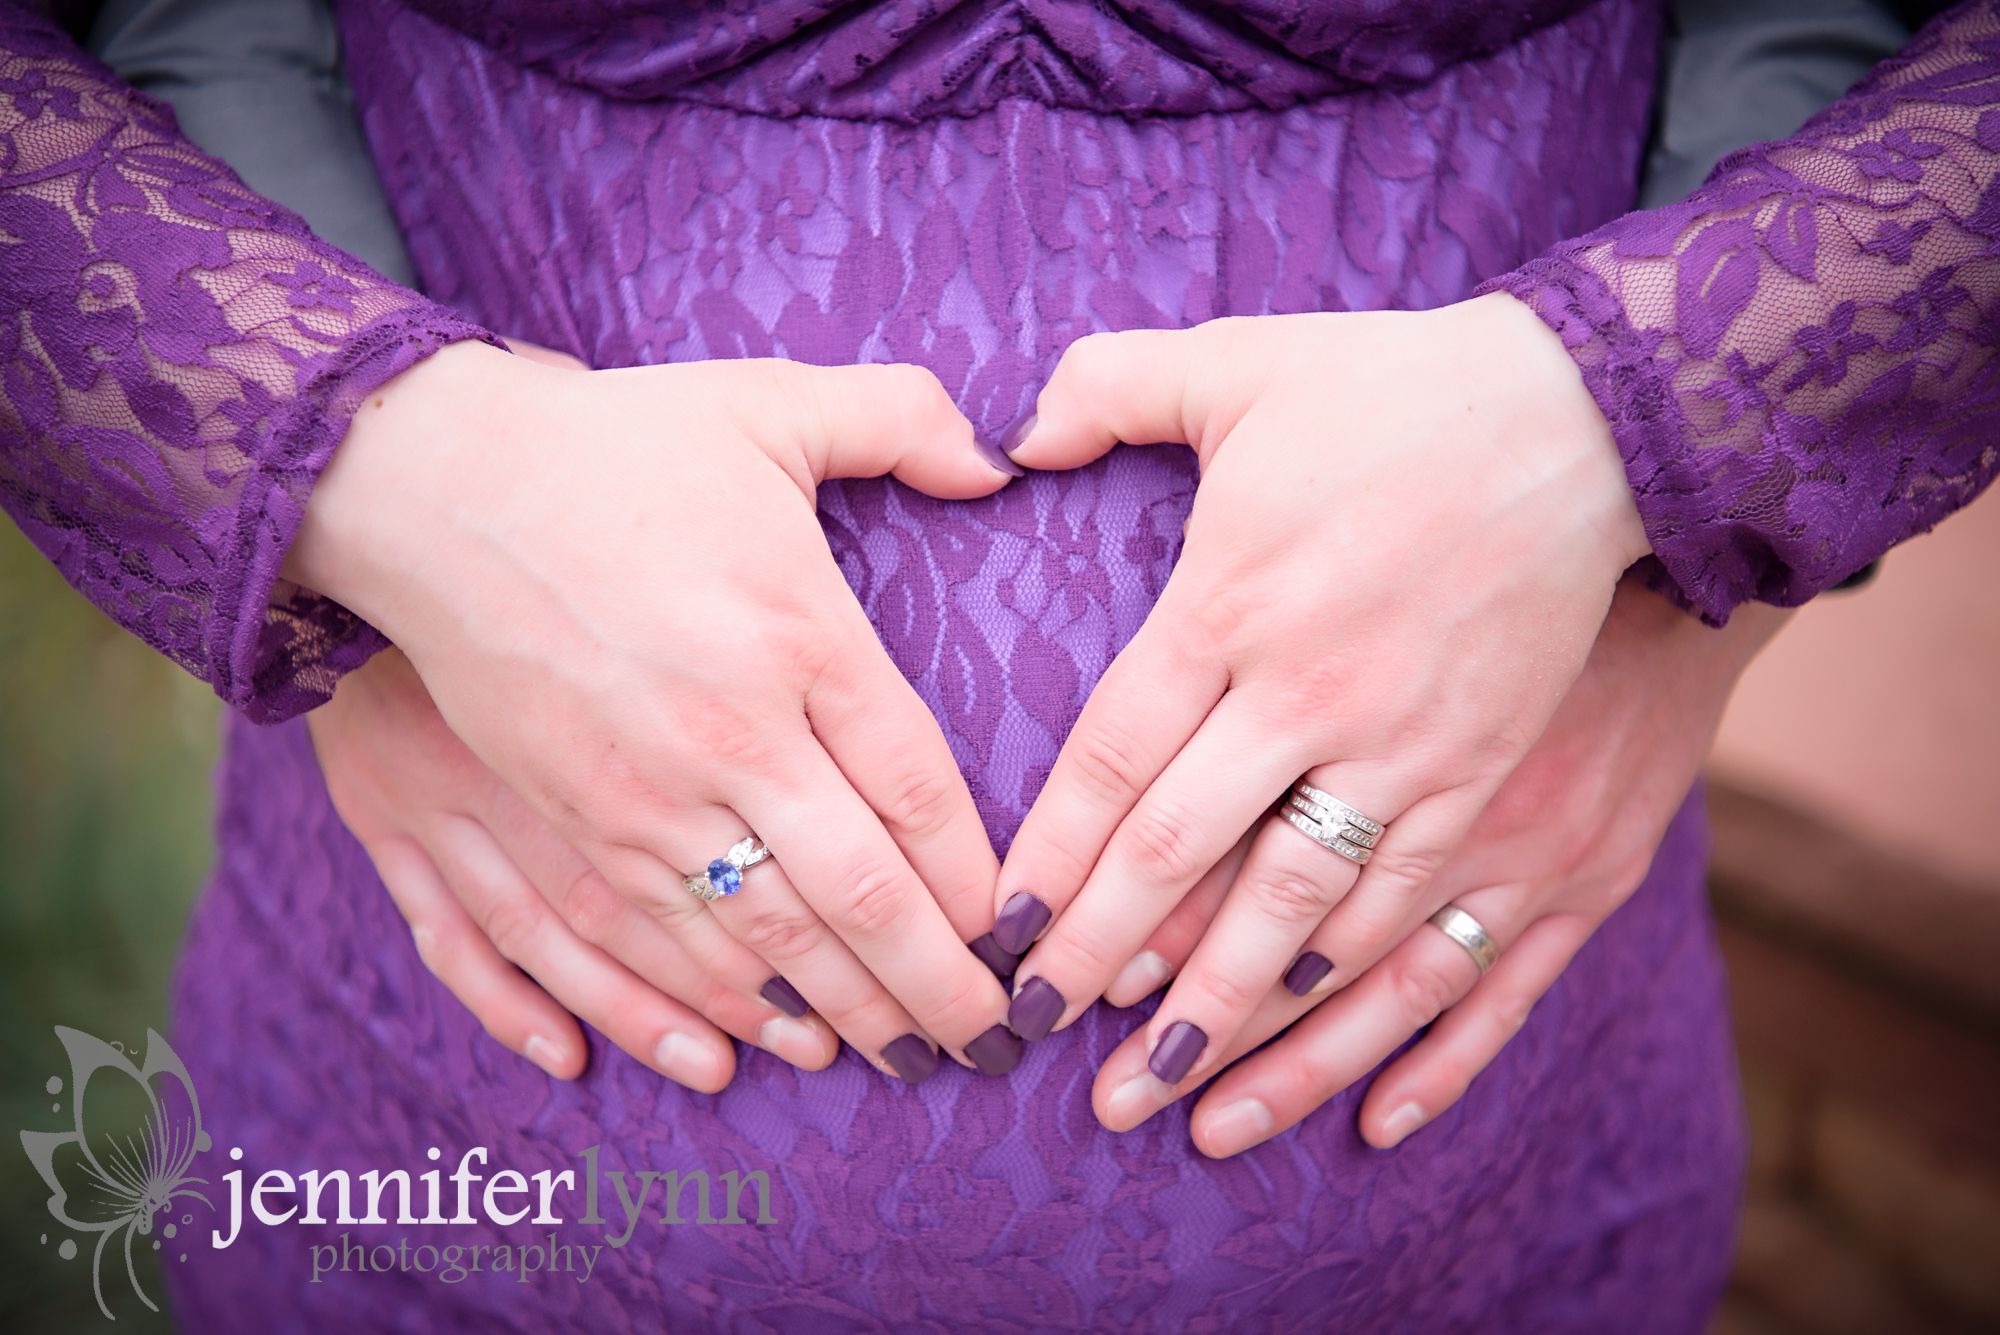 Two hands make a heart on a baby bump